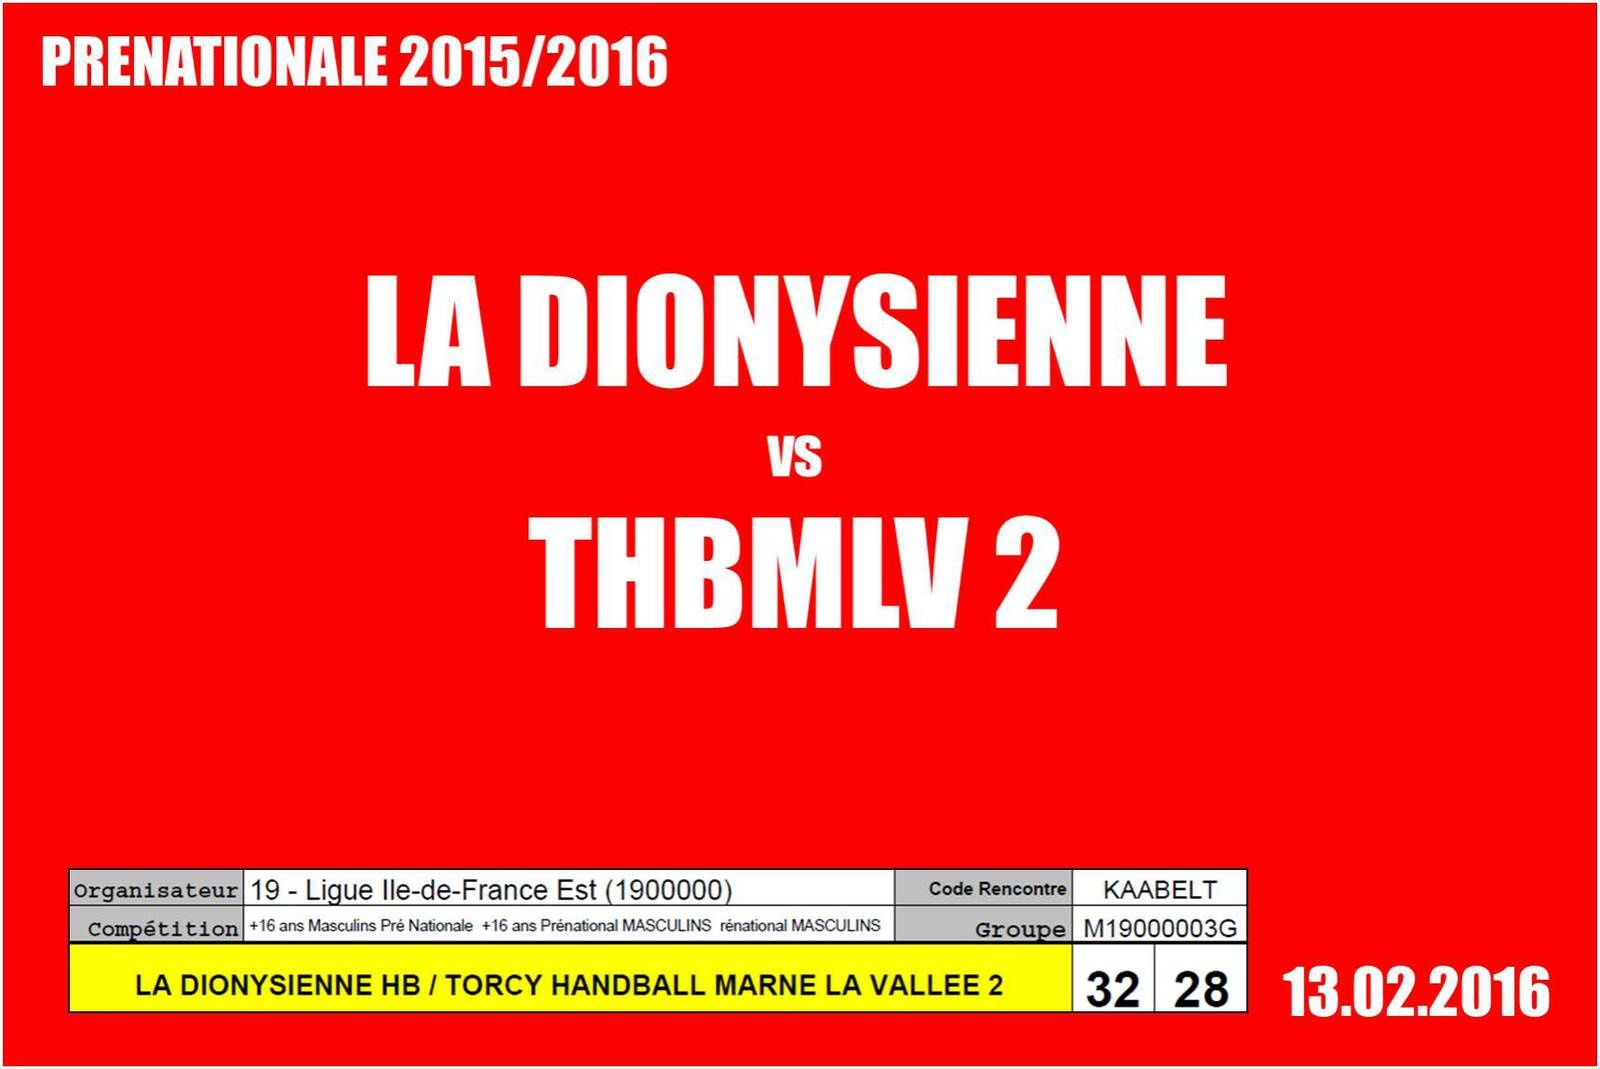 ST-DENIS vs THBMLV 2 (Pré-Nationale) 13.02.2016